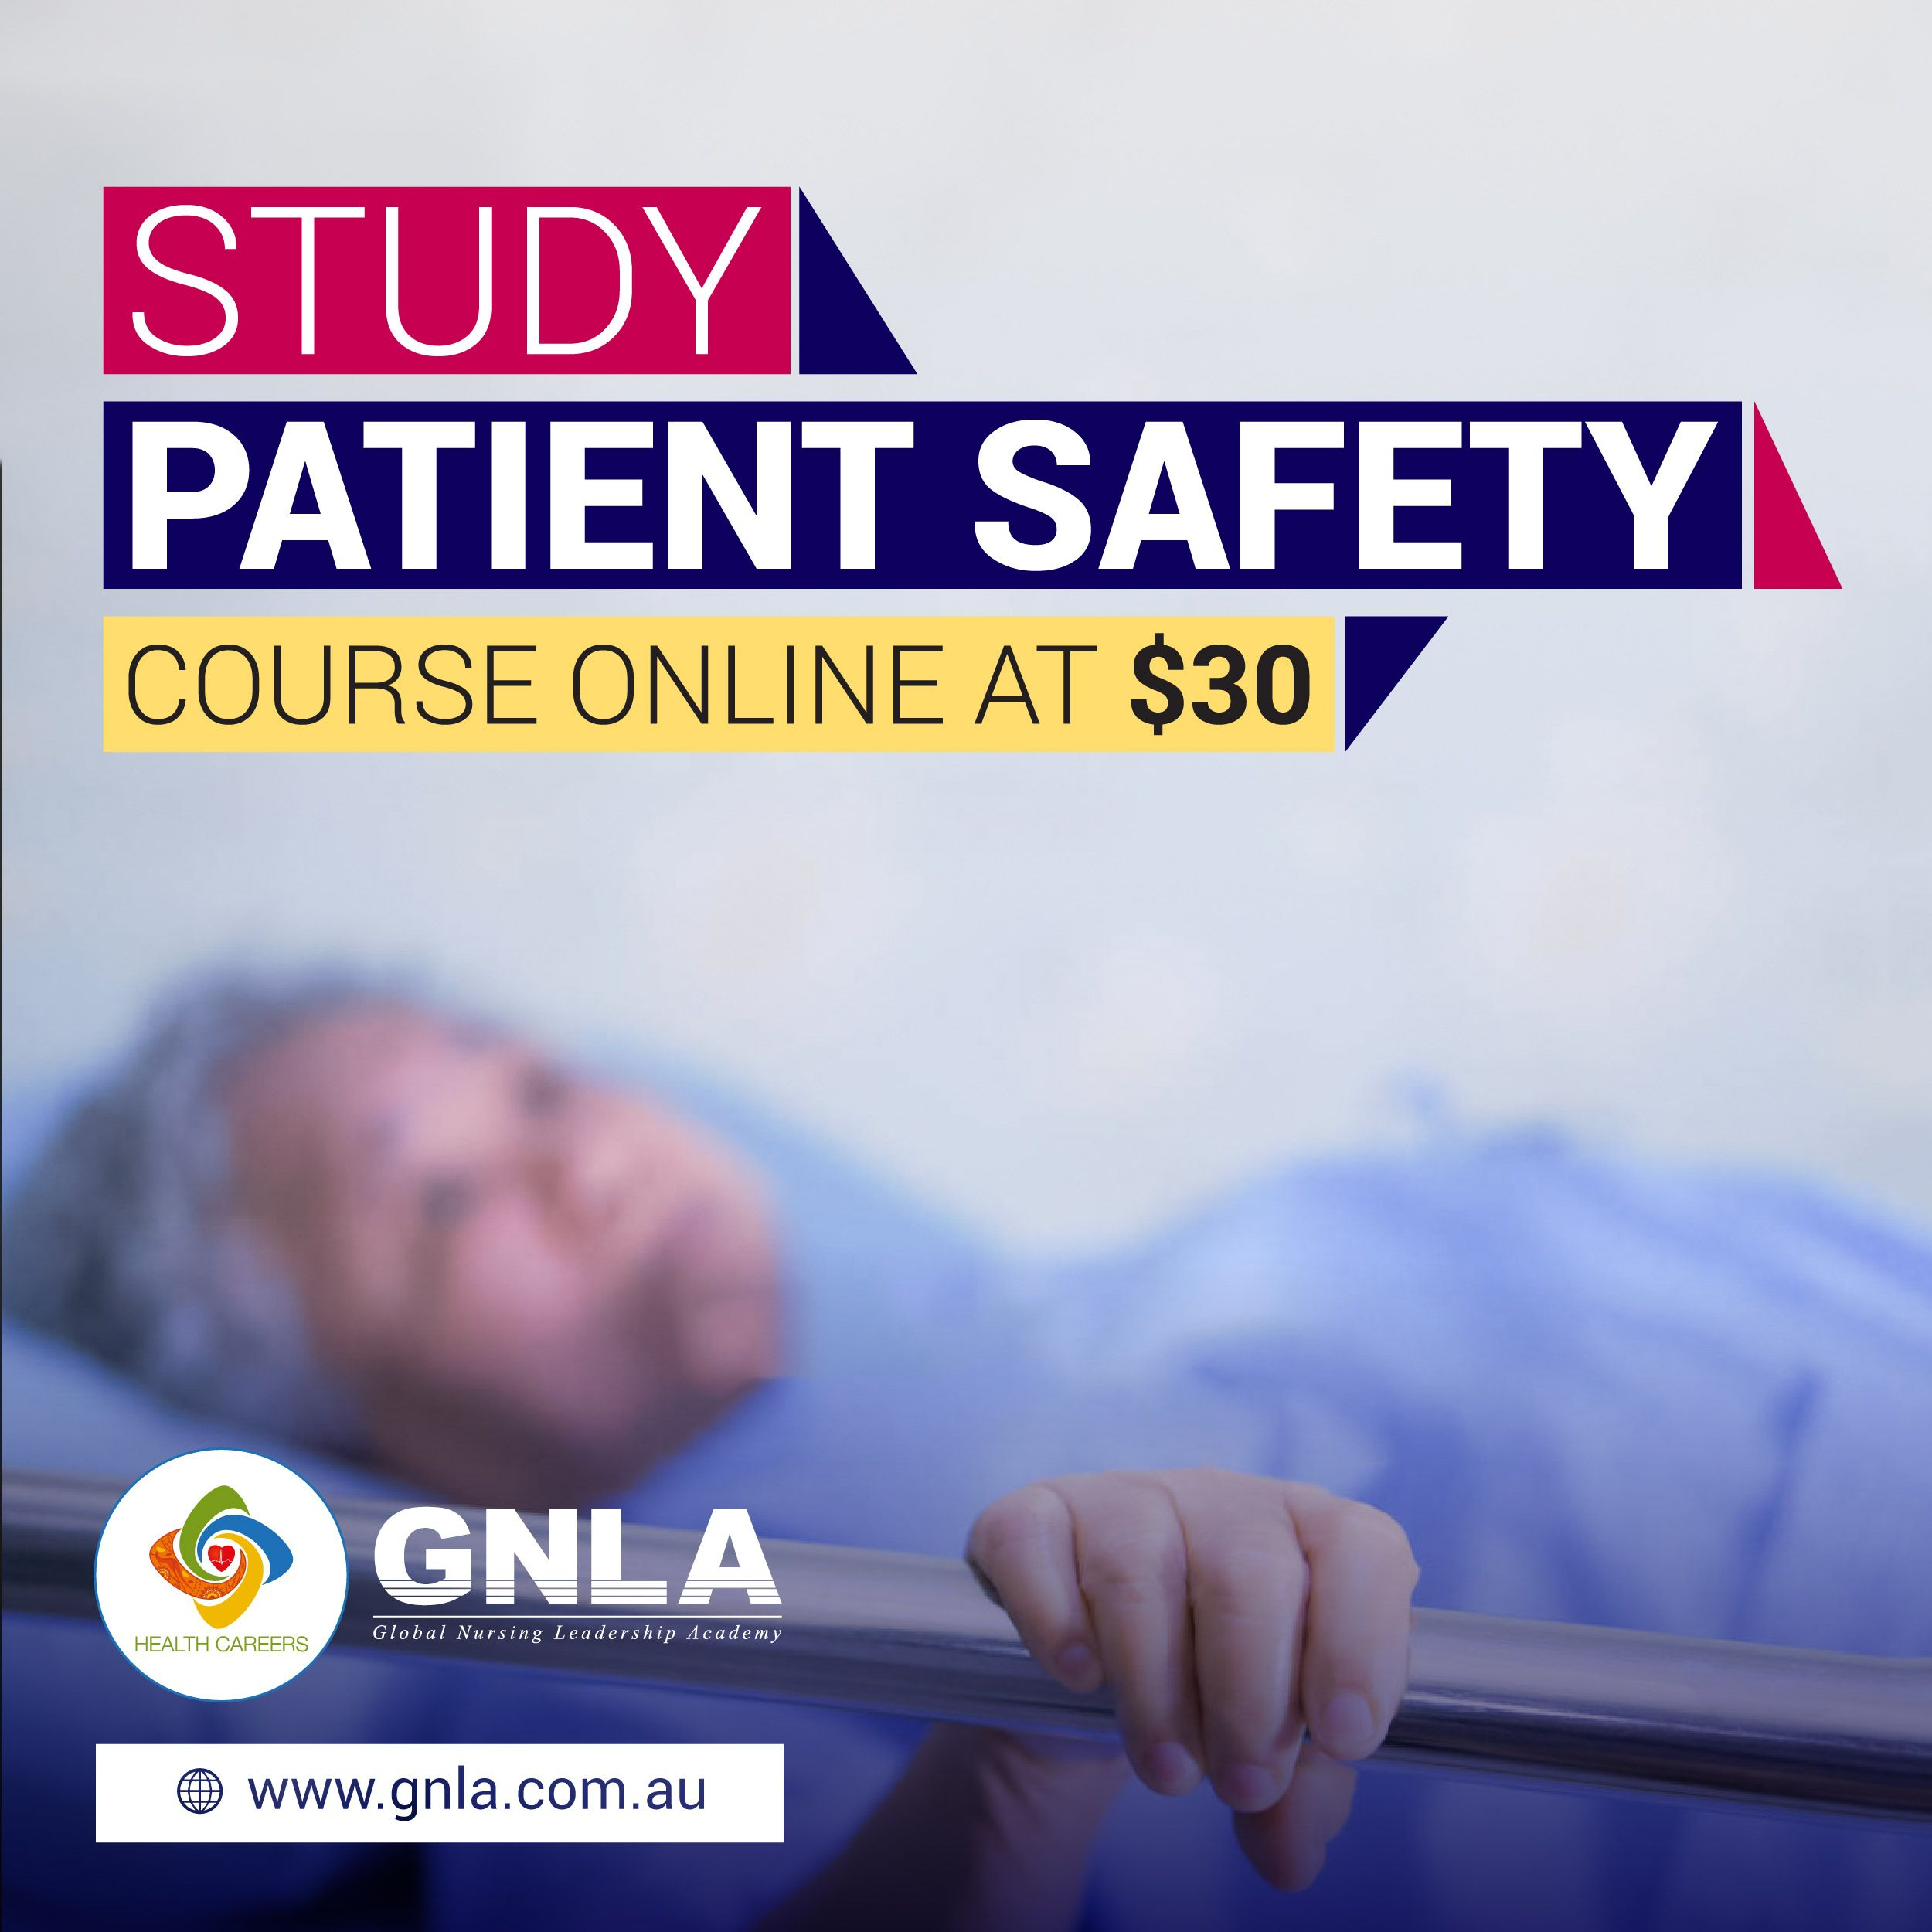 Study Patient Safety Course Online @ GNLA. #PatientSafety